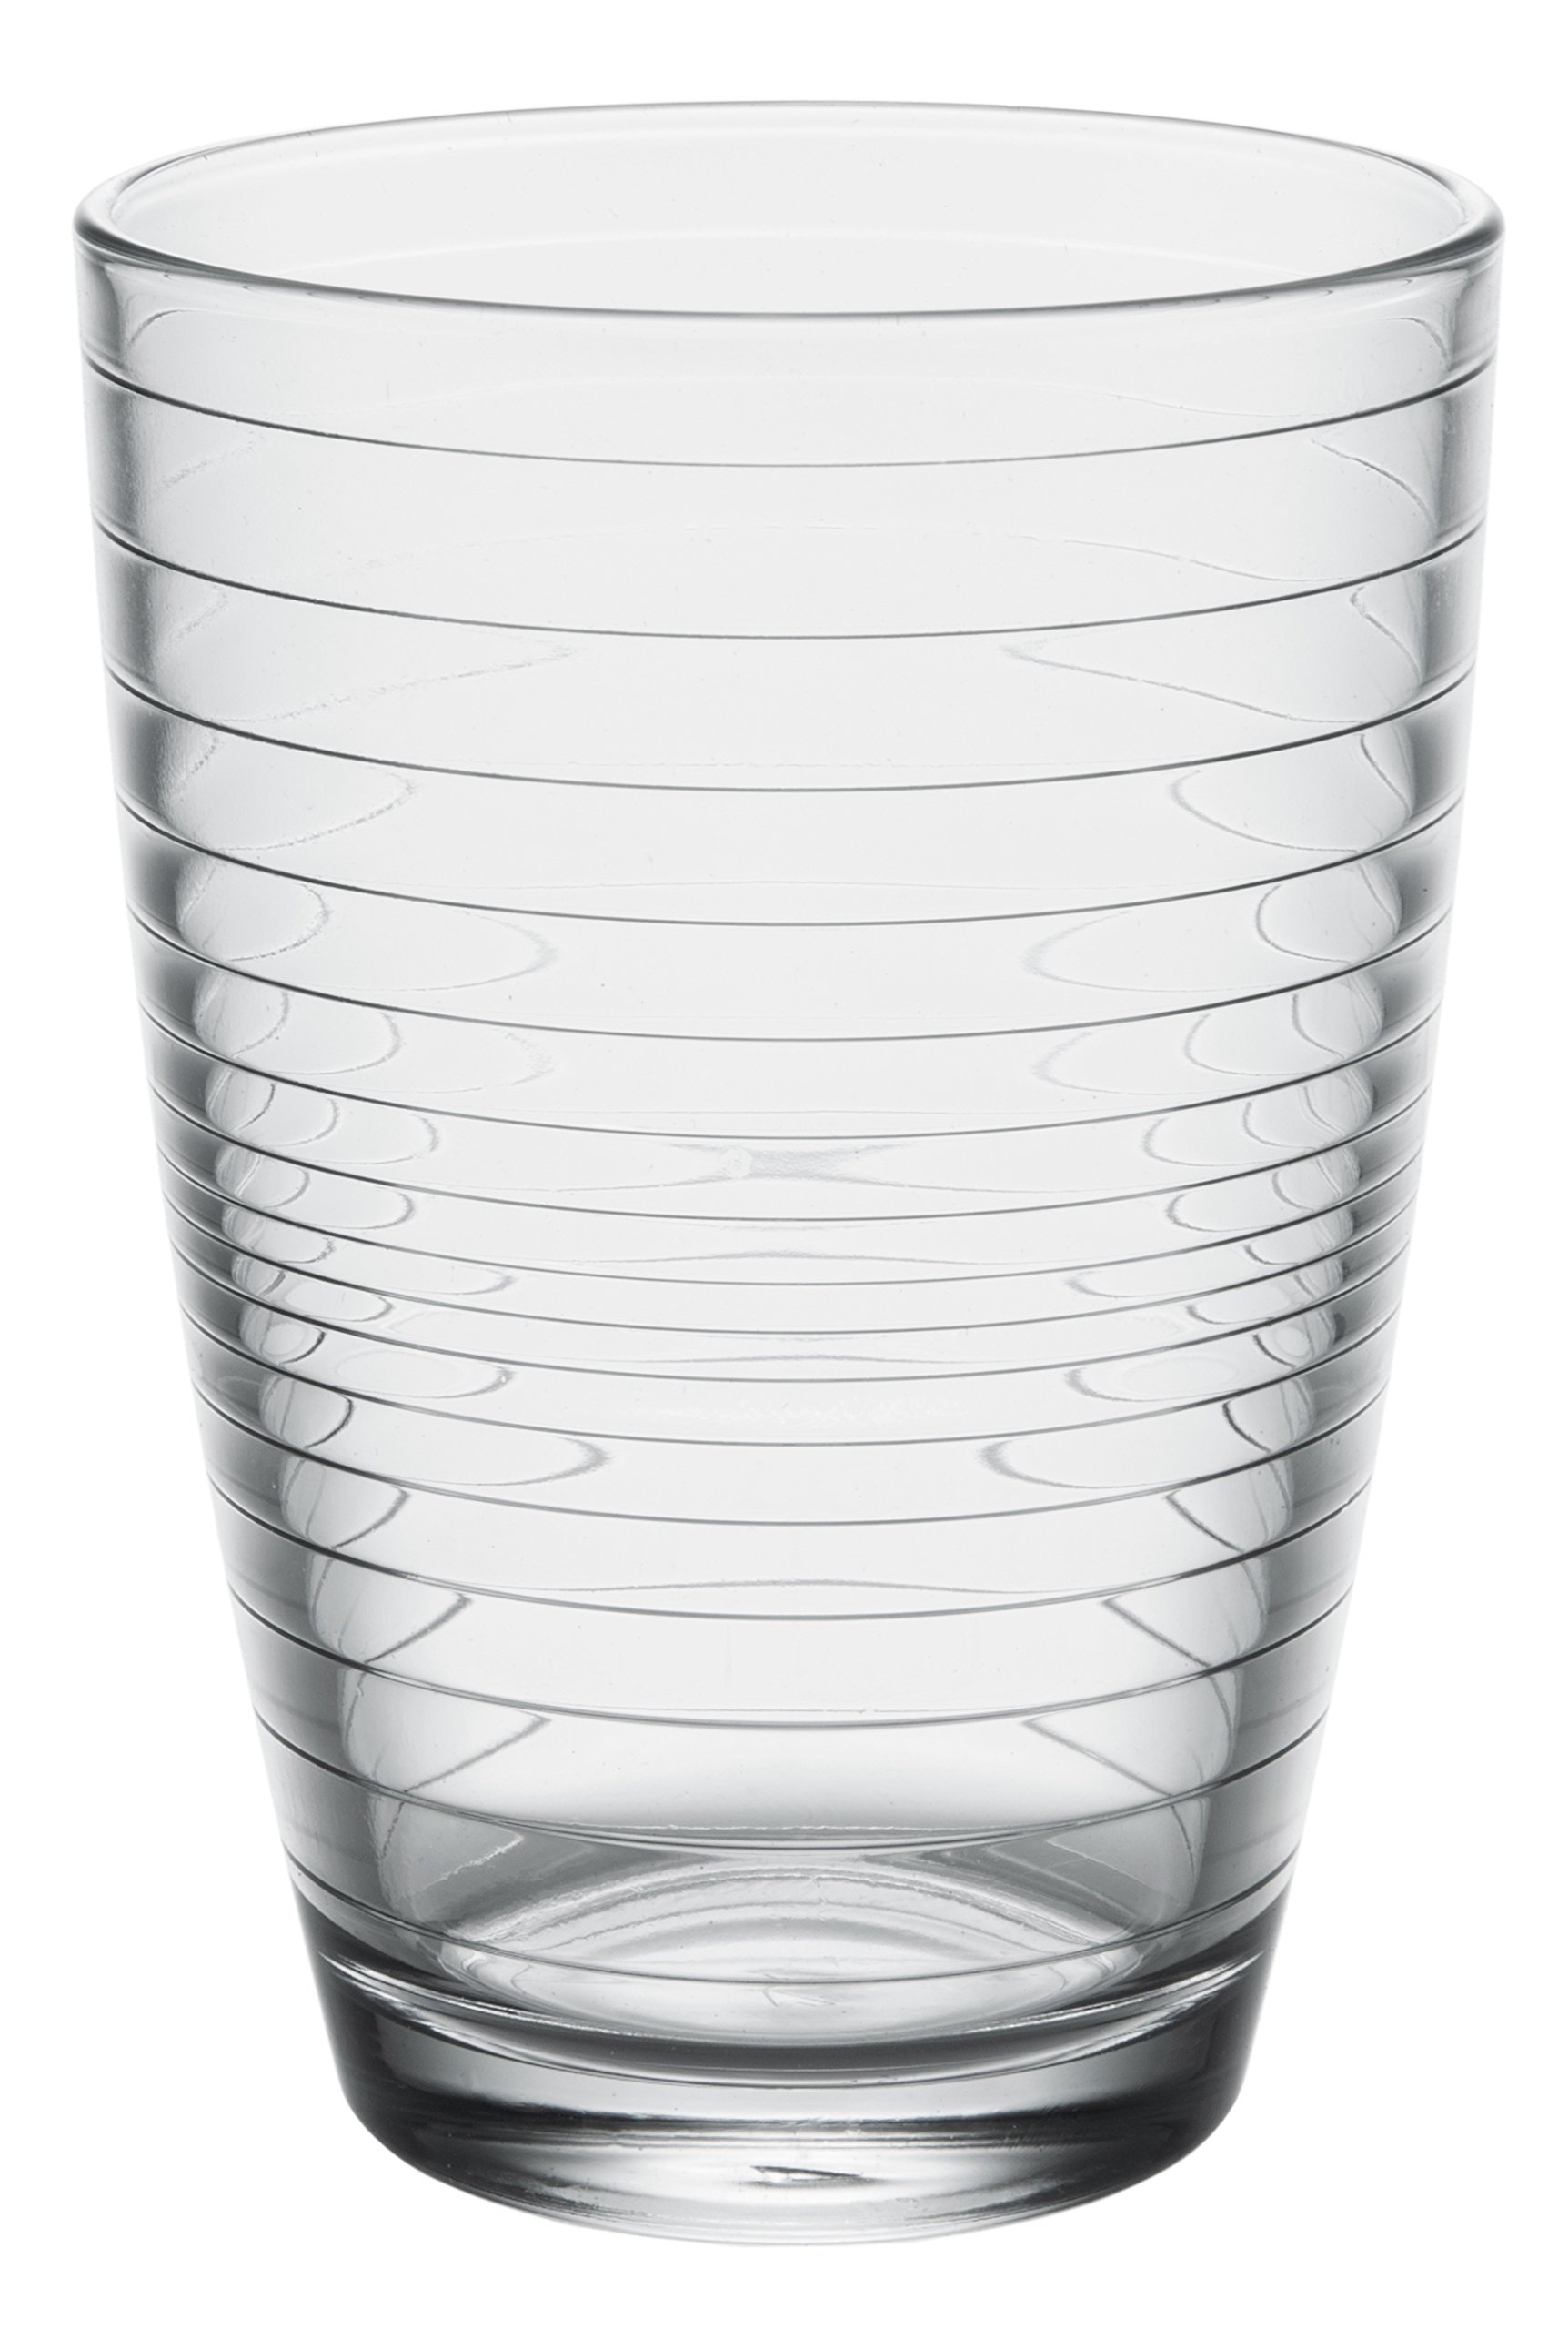 Apollon Modern Clear Glass Tall Iced Tea Cups, Drinking Glasses Water Juice Soda Beverage Tumblers, Set of 6, 14 fl oz